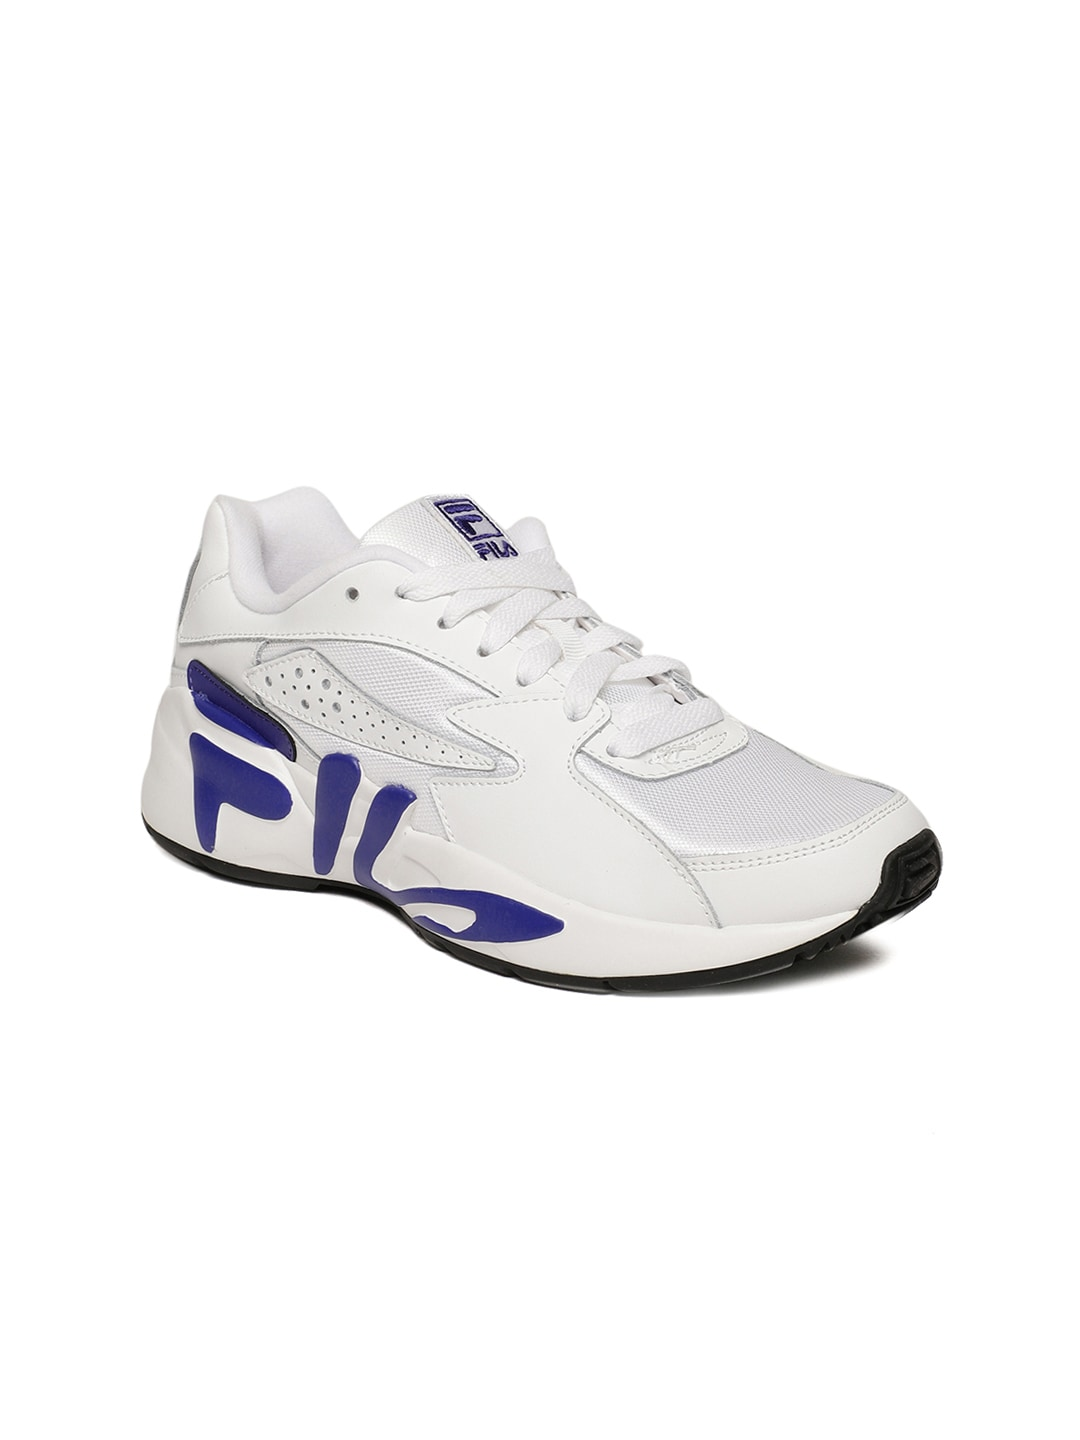 Fila Shoes - Buy Original Fila Shoes Online in India  1096629ce4b7